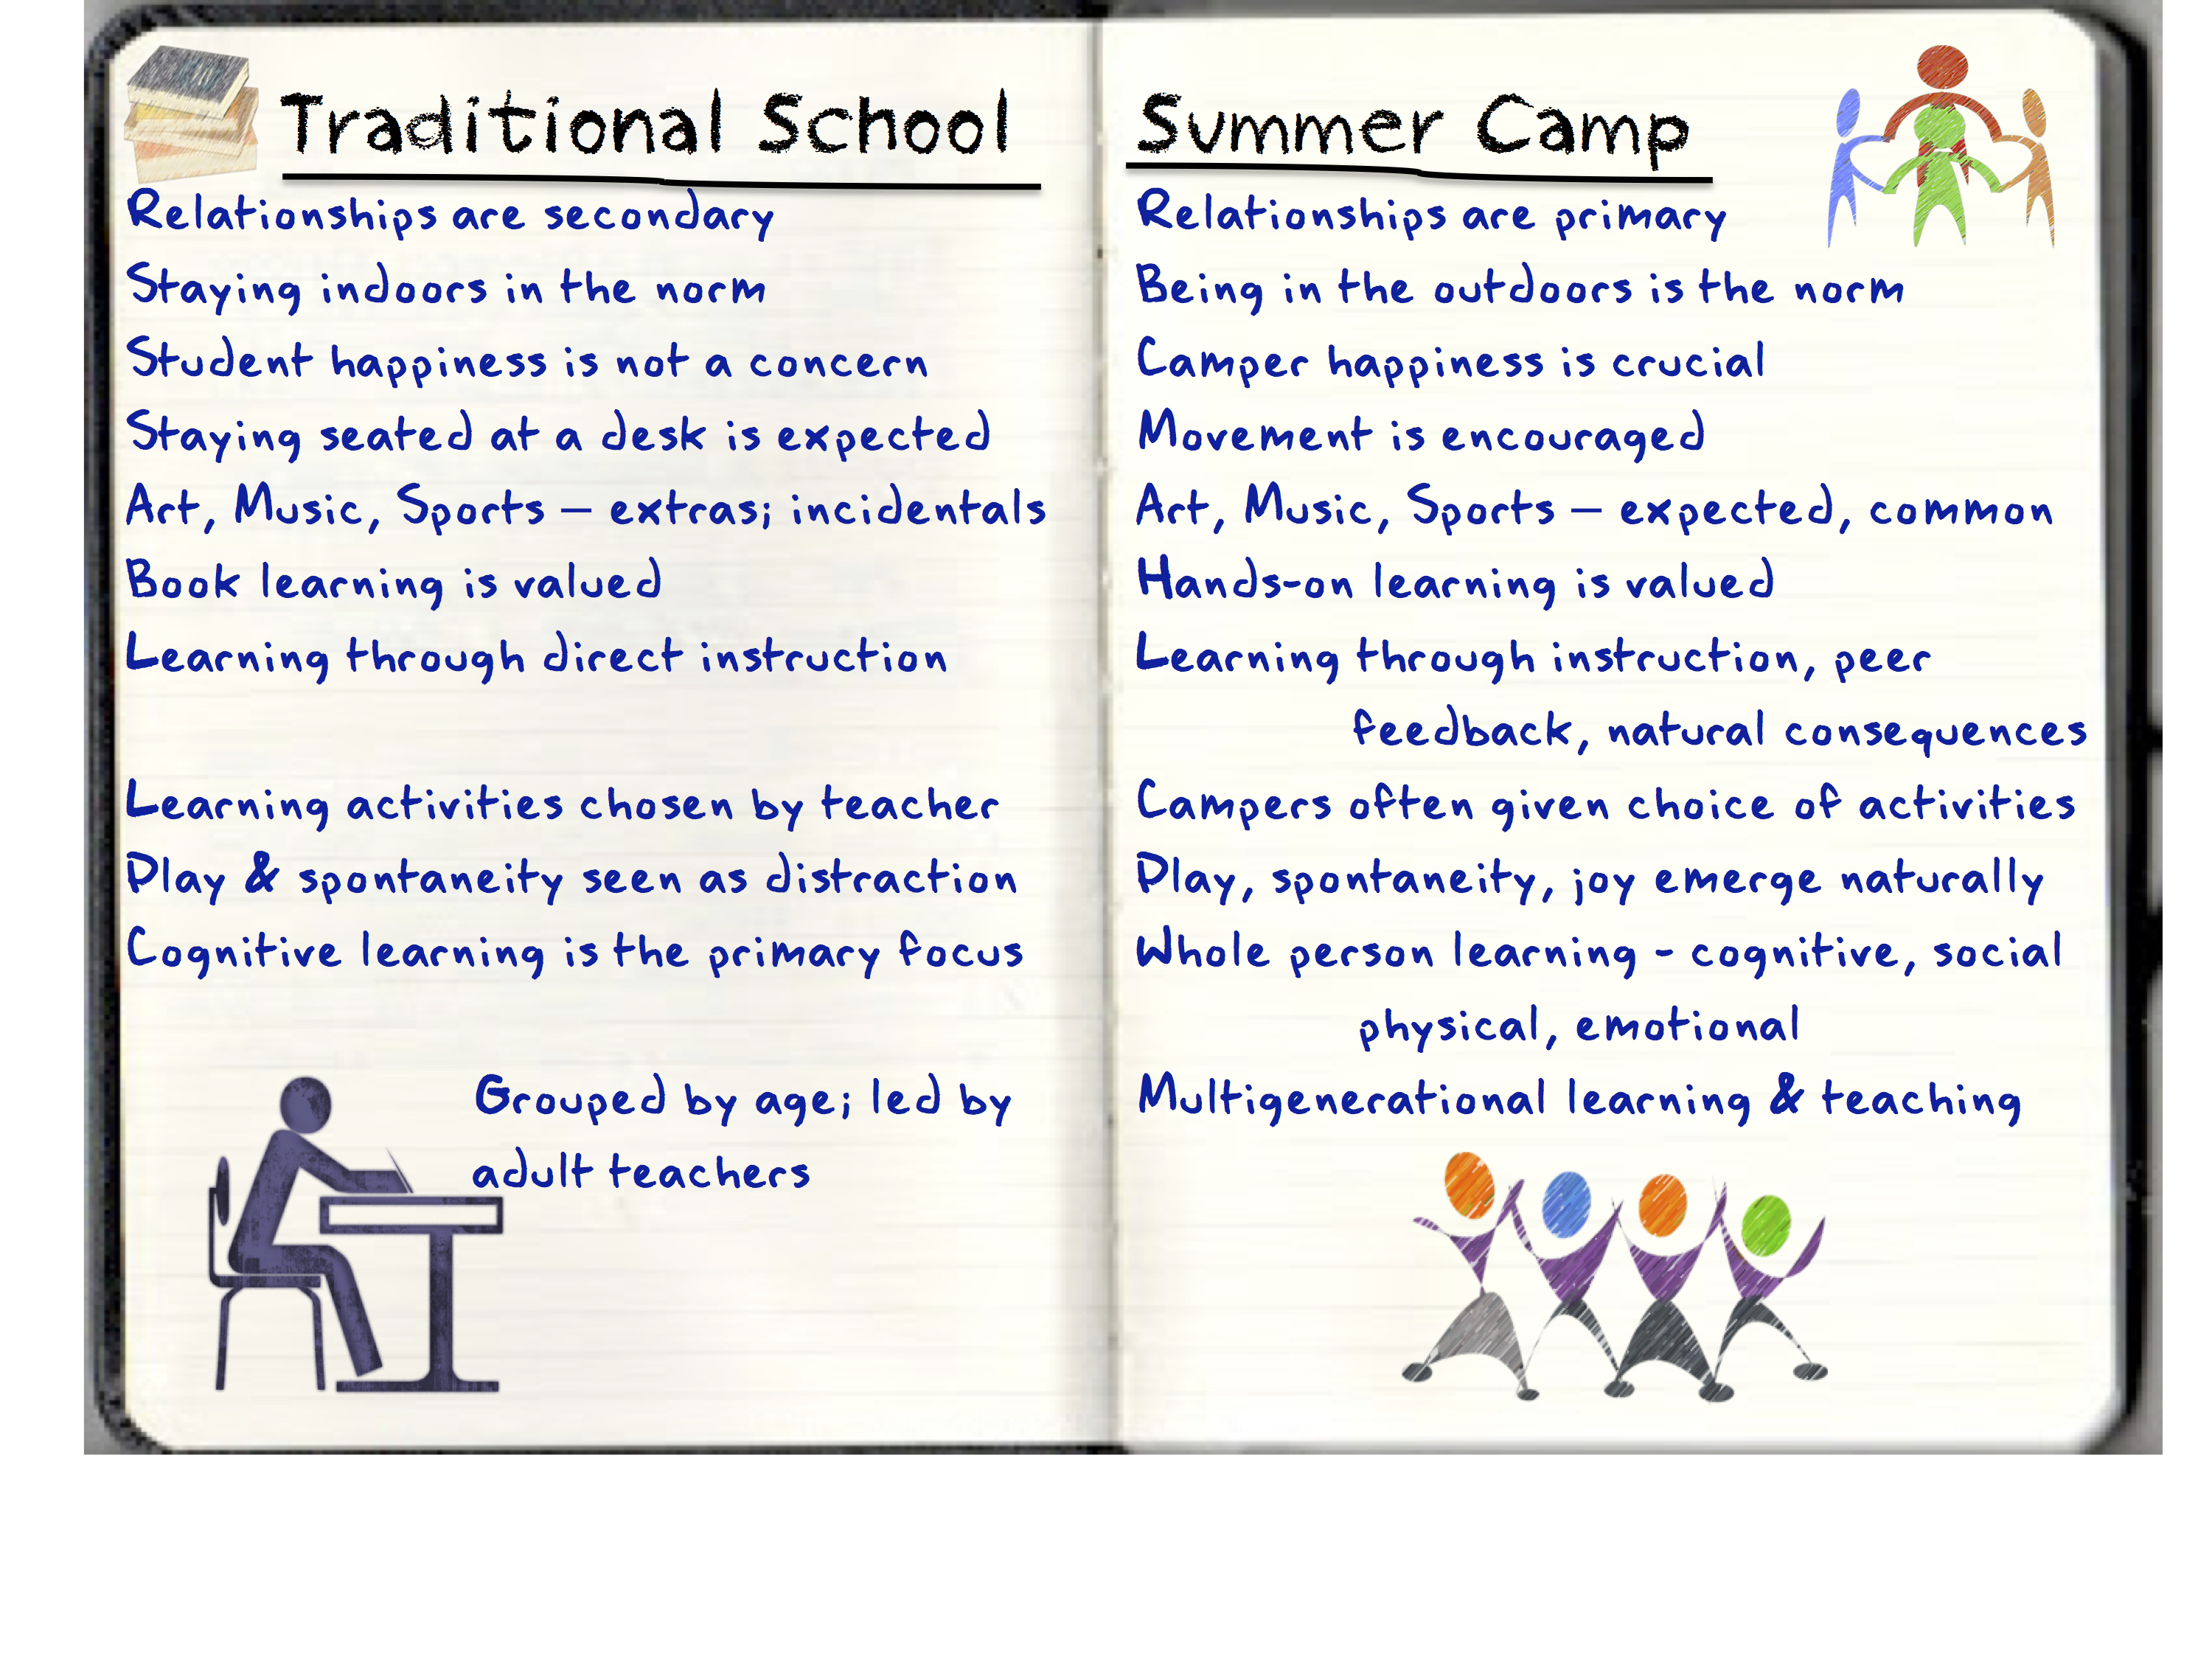 files/images/school-camp.jpg